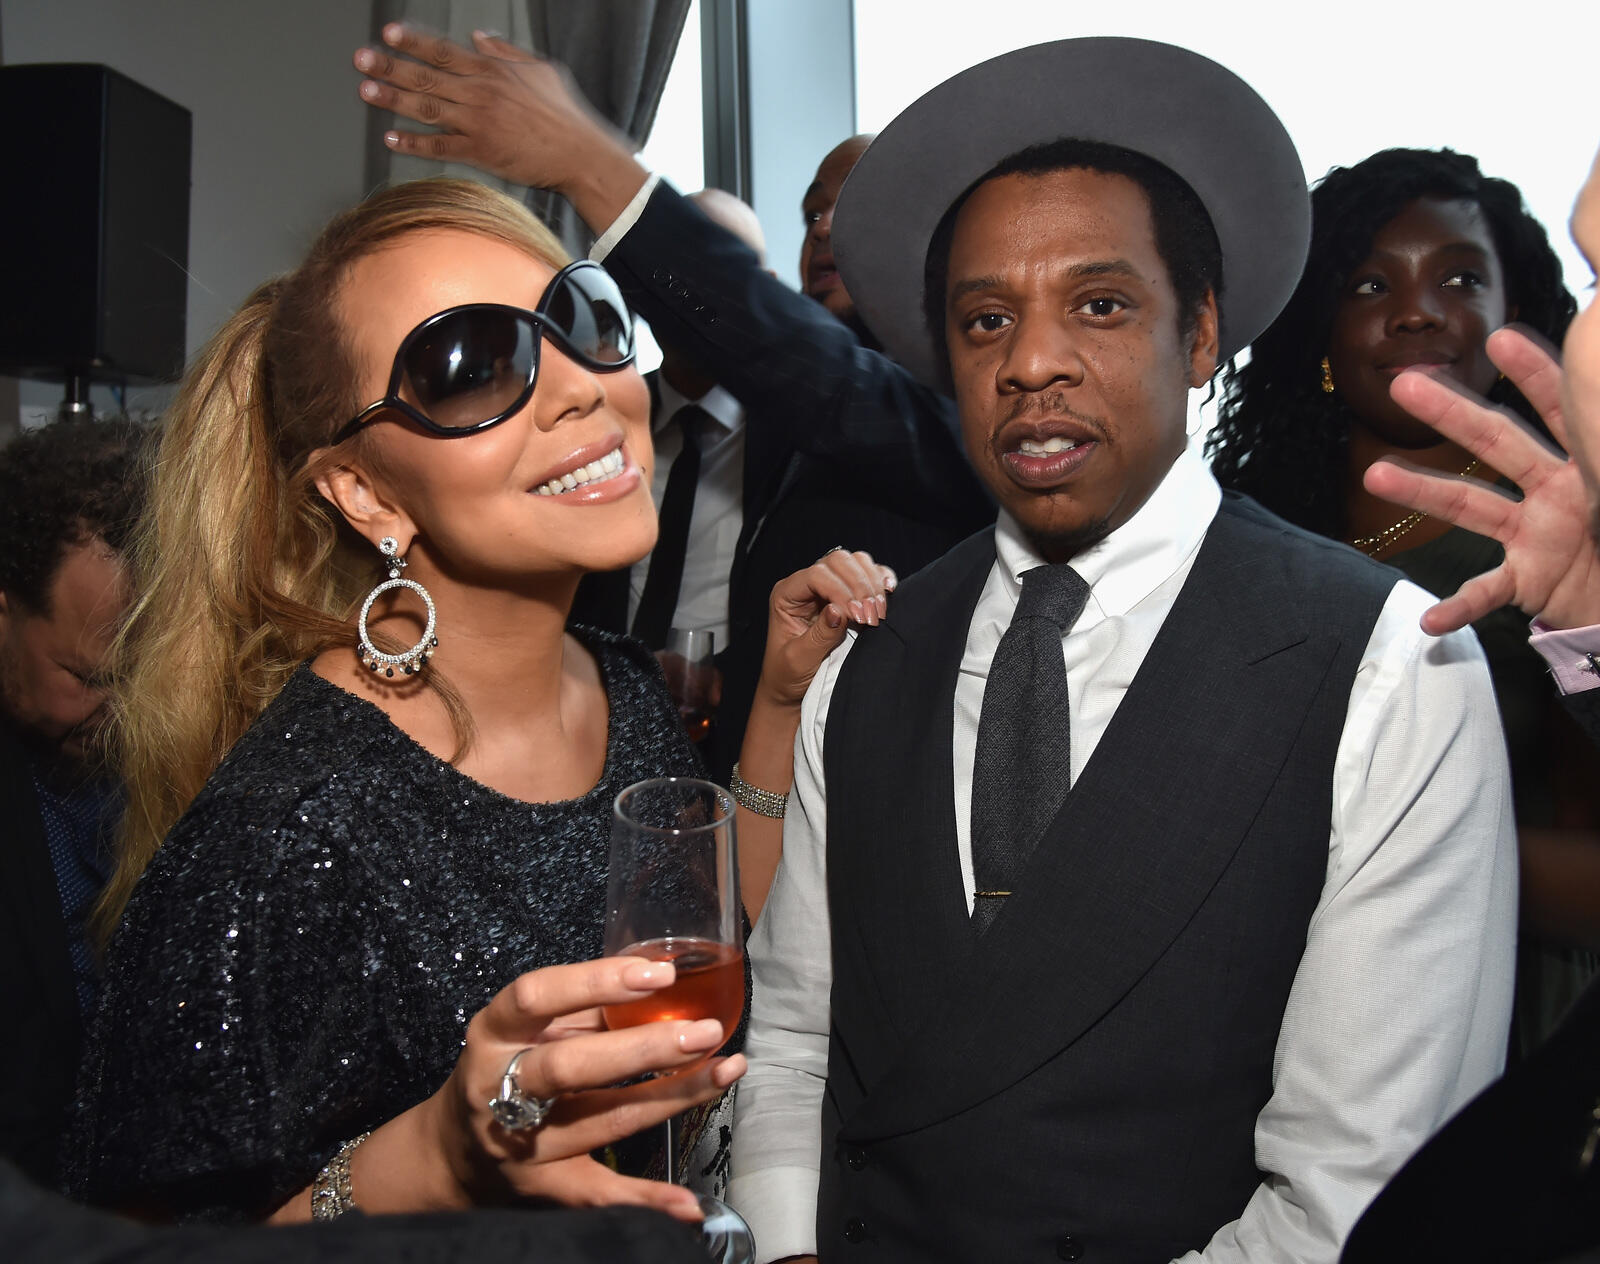 """202: 06/08/21 - Mariah Carey Slams Claims That She Left Roc Nation After An """"Explosive"""" Fight With Jay-Z: 'Poof, Vamoose Son Of A B****!'"""